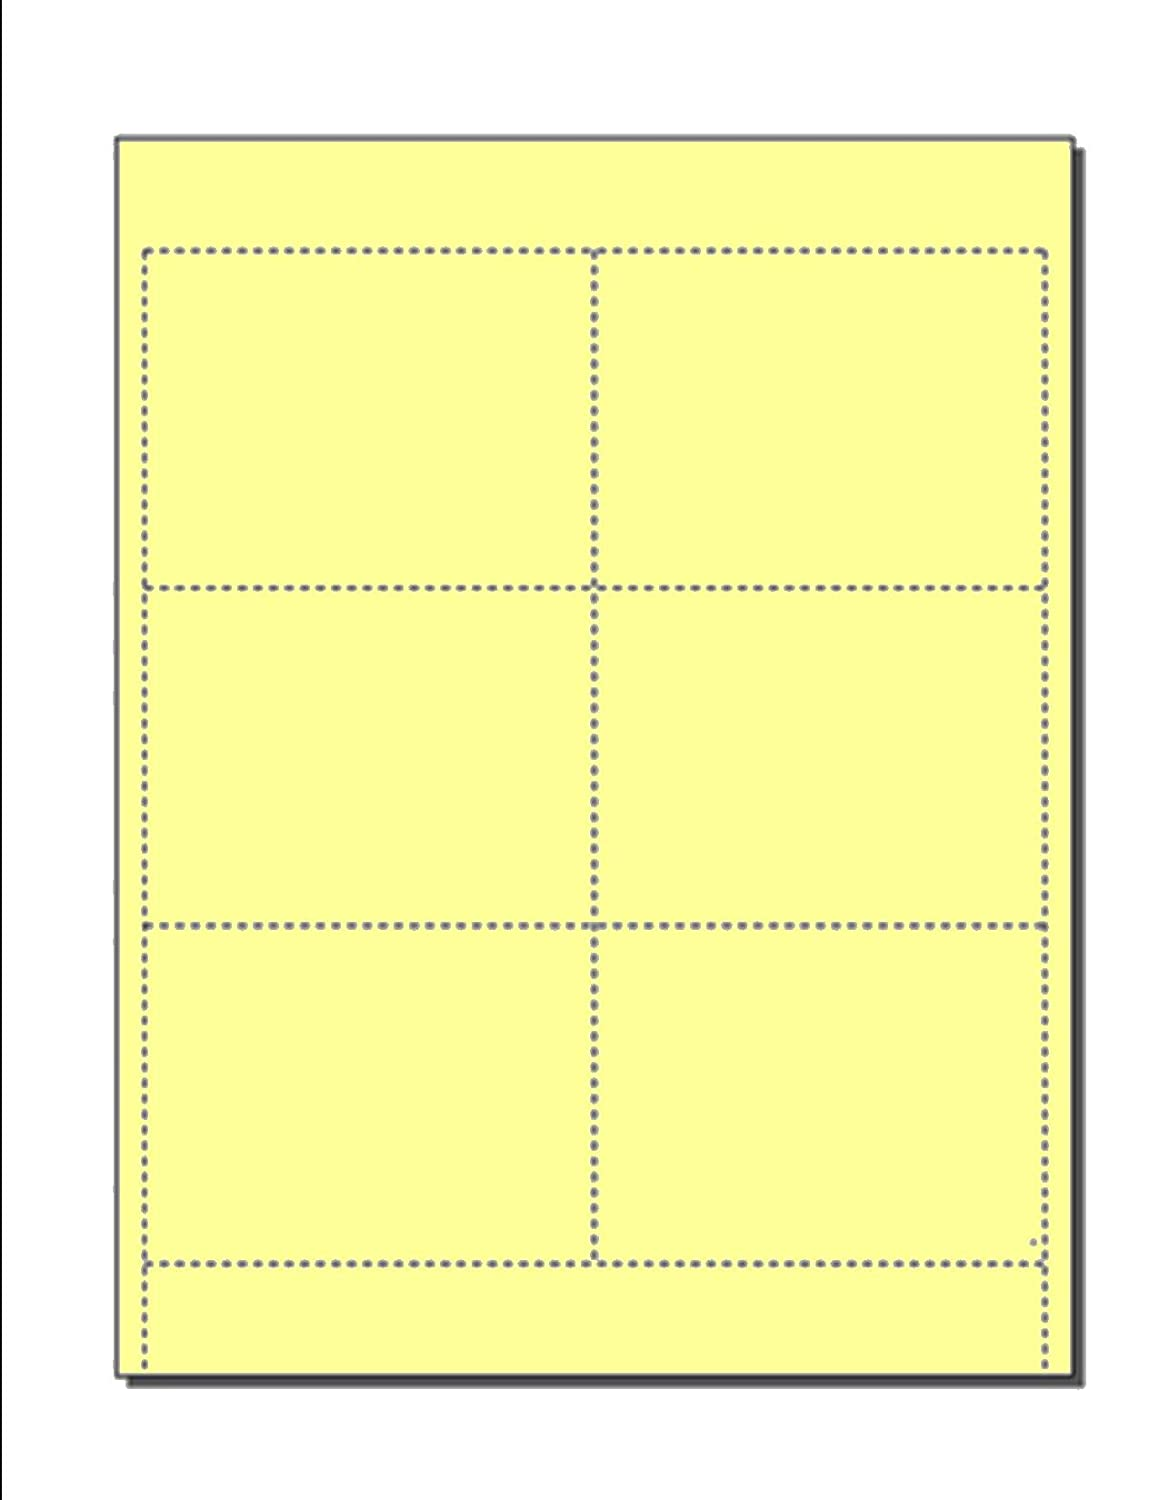 "Blank Name Badge Inserts, Print-Ready on 8.5"" x 11"", 67-lb Yellow Vellum, 6 Badges Per Sheet (4"" x 3"") - 250 Sheets Zapco"